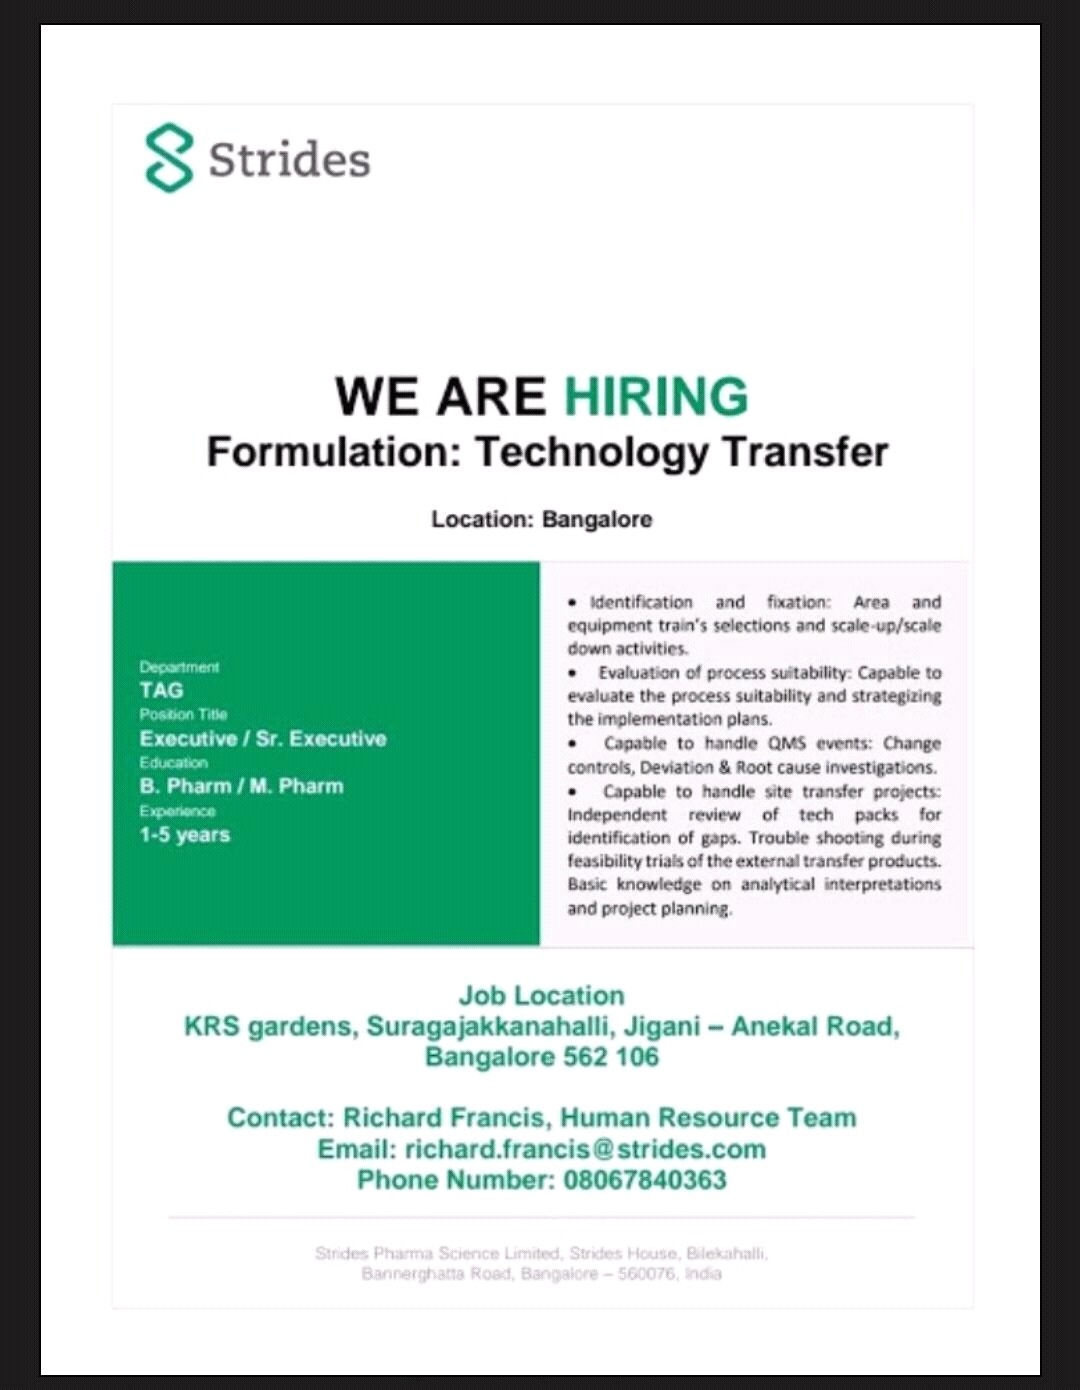 Strides - Urgent Opening for Technology Transfer   Apply CV Now